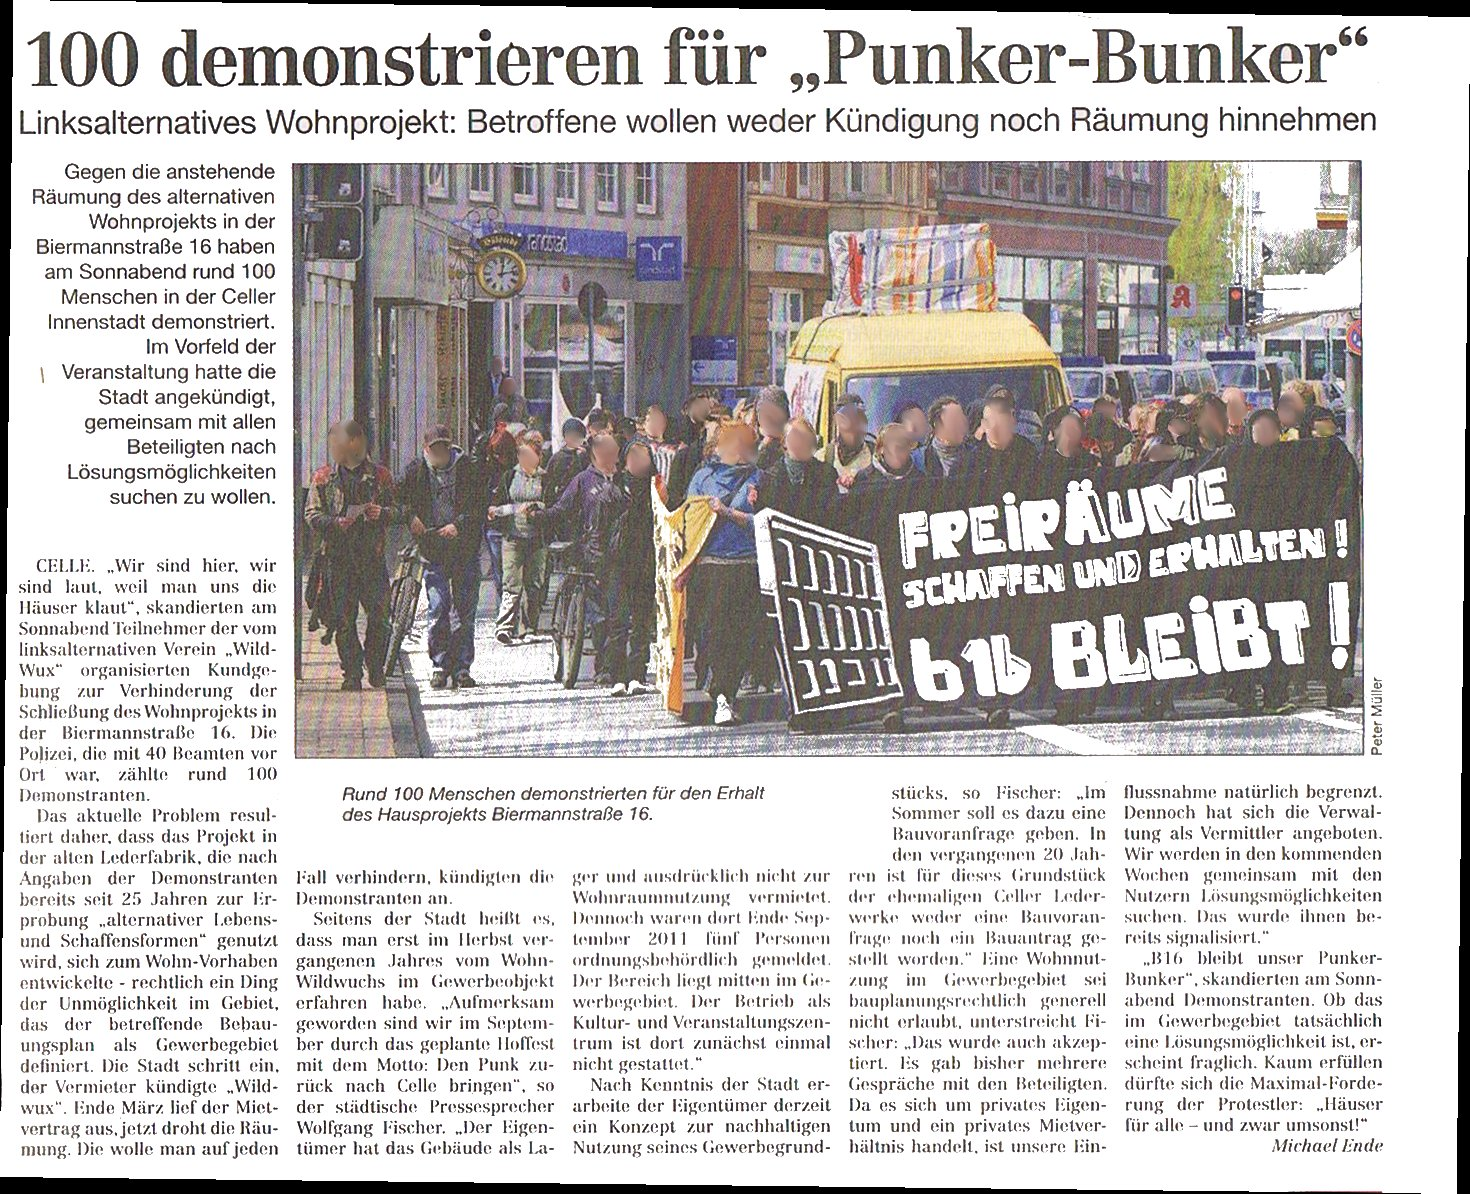 Cellesche Zeitung Zur Demonstration 171 B16